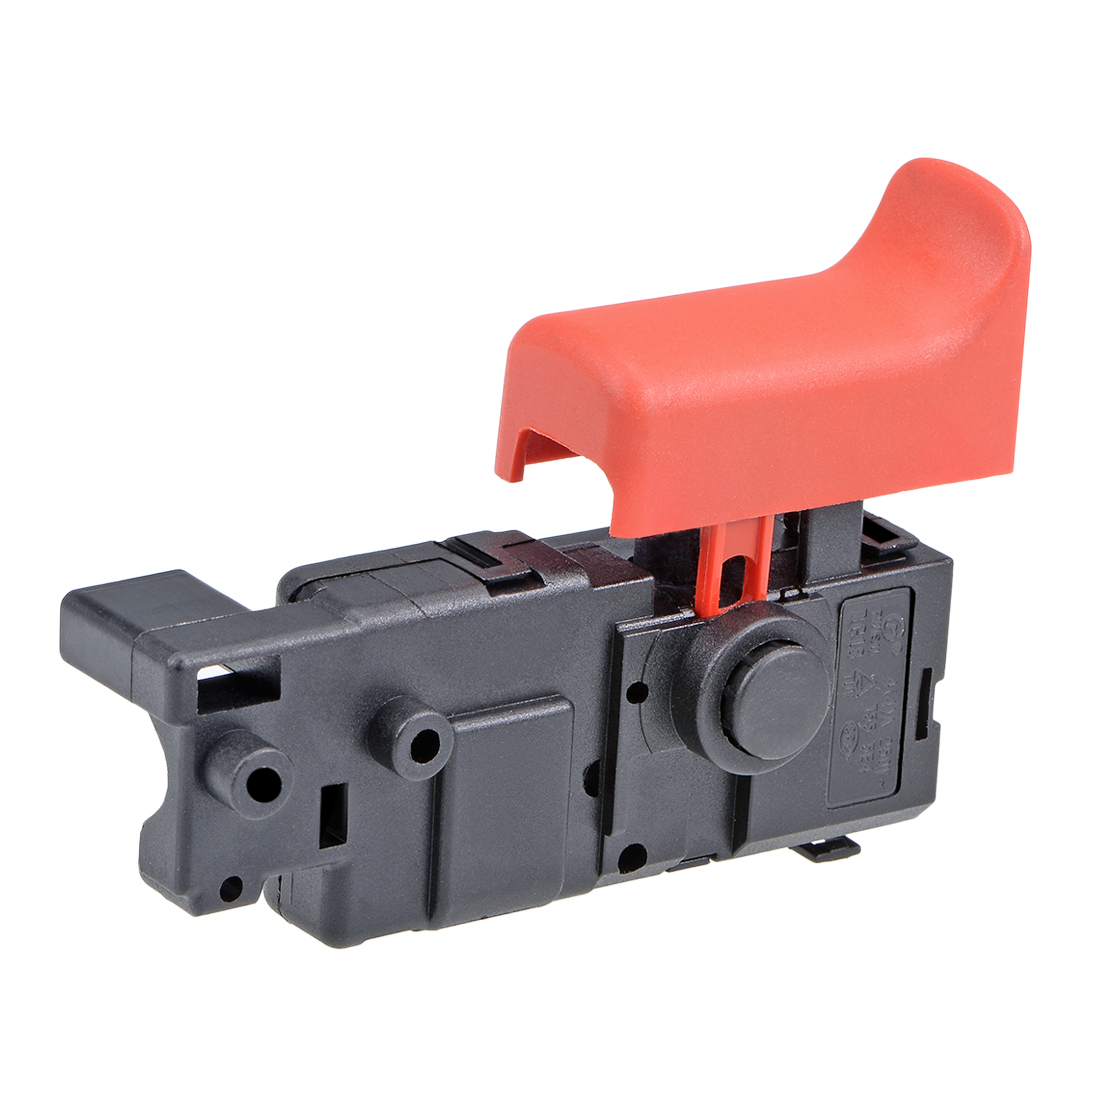 Trigger Switch for GBH2-22 Electric Hammer 250V-4A Speed Control Switch